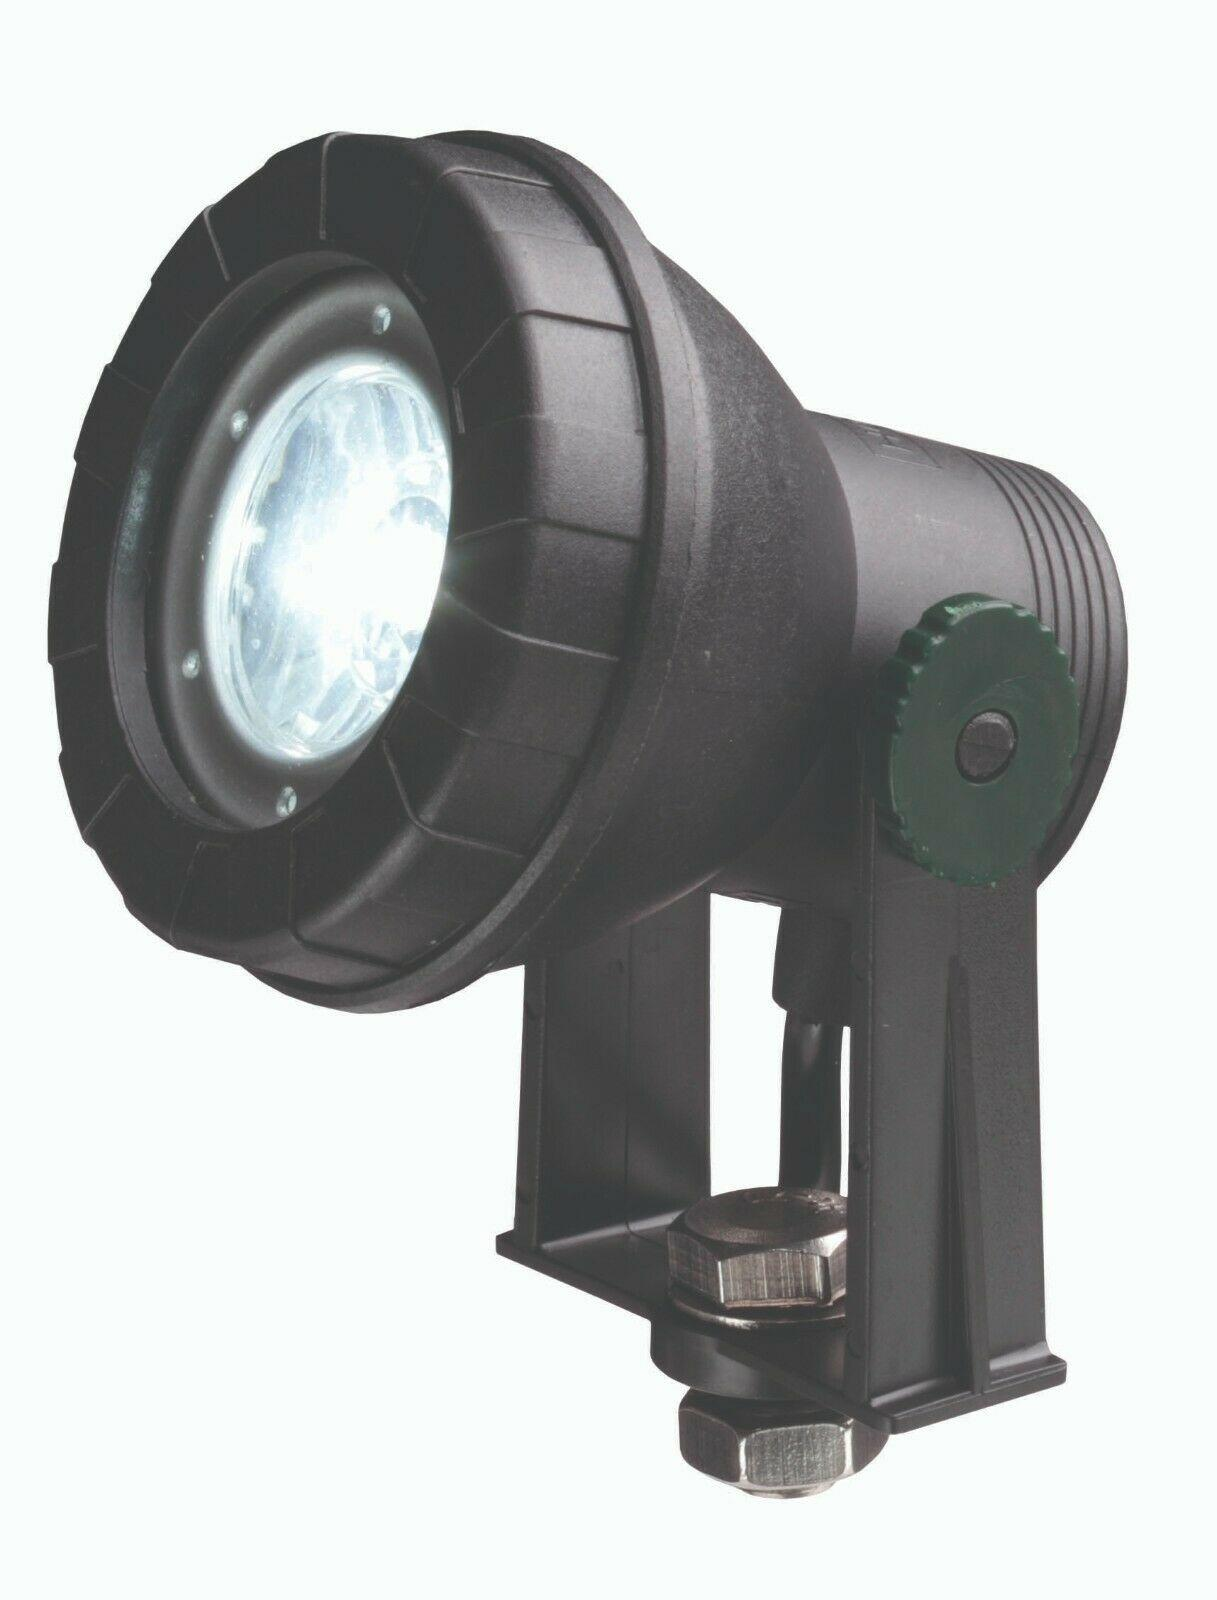 Blagdon LED Pond & Garden LIghts 5 x 3w - 1052276